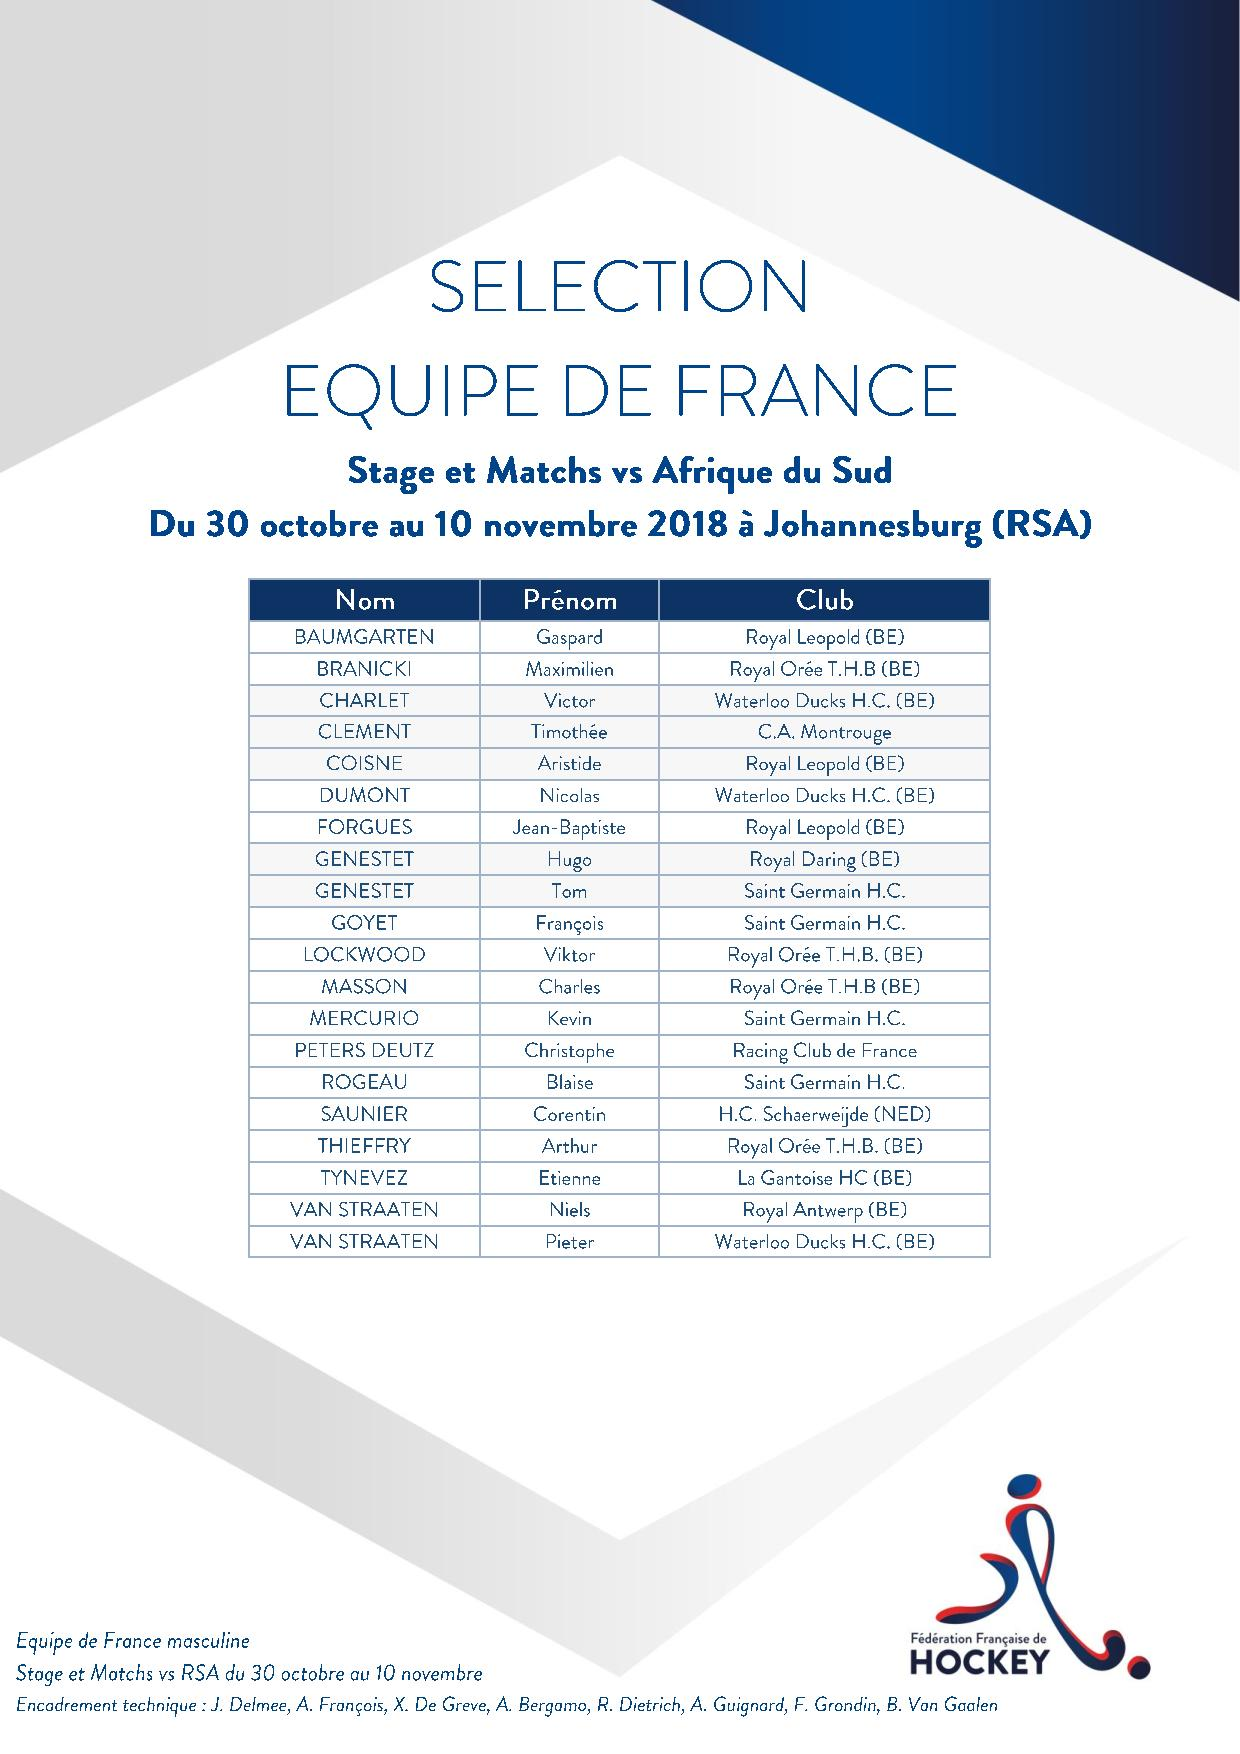 SELECTION EQUIPE DE FRANCE Stage et Matchs 1du 30 octobre au 10 novembre 2018 vs RSA